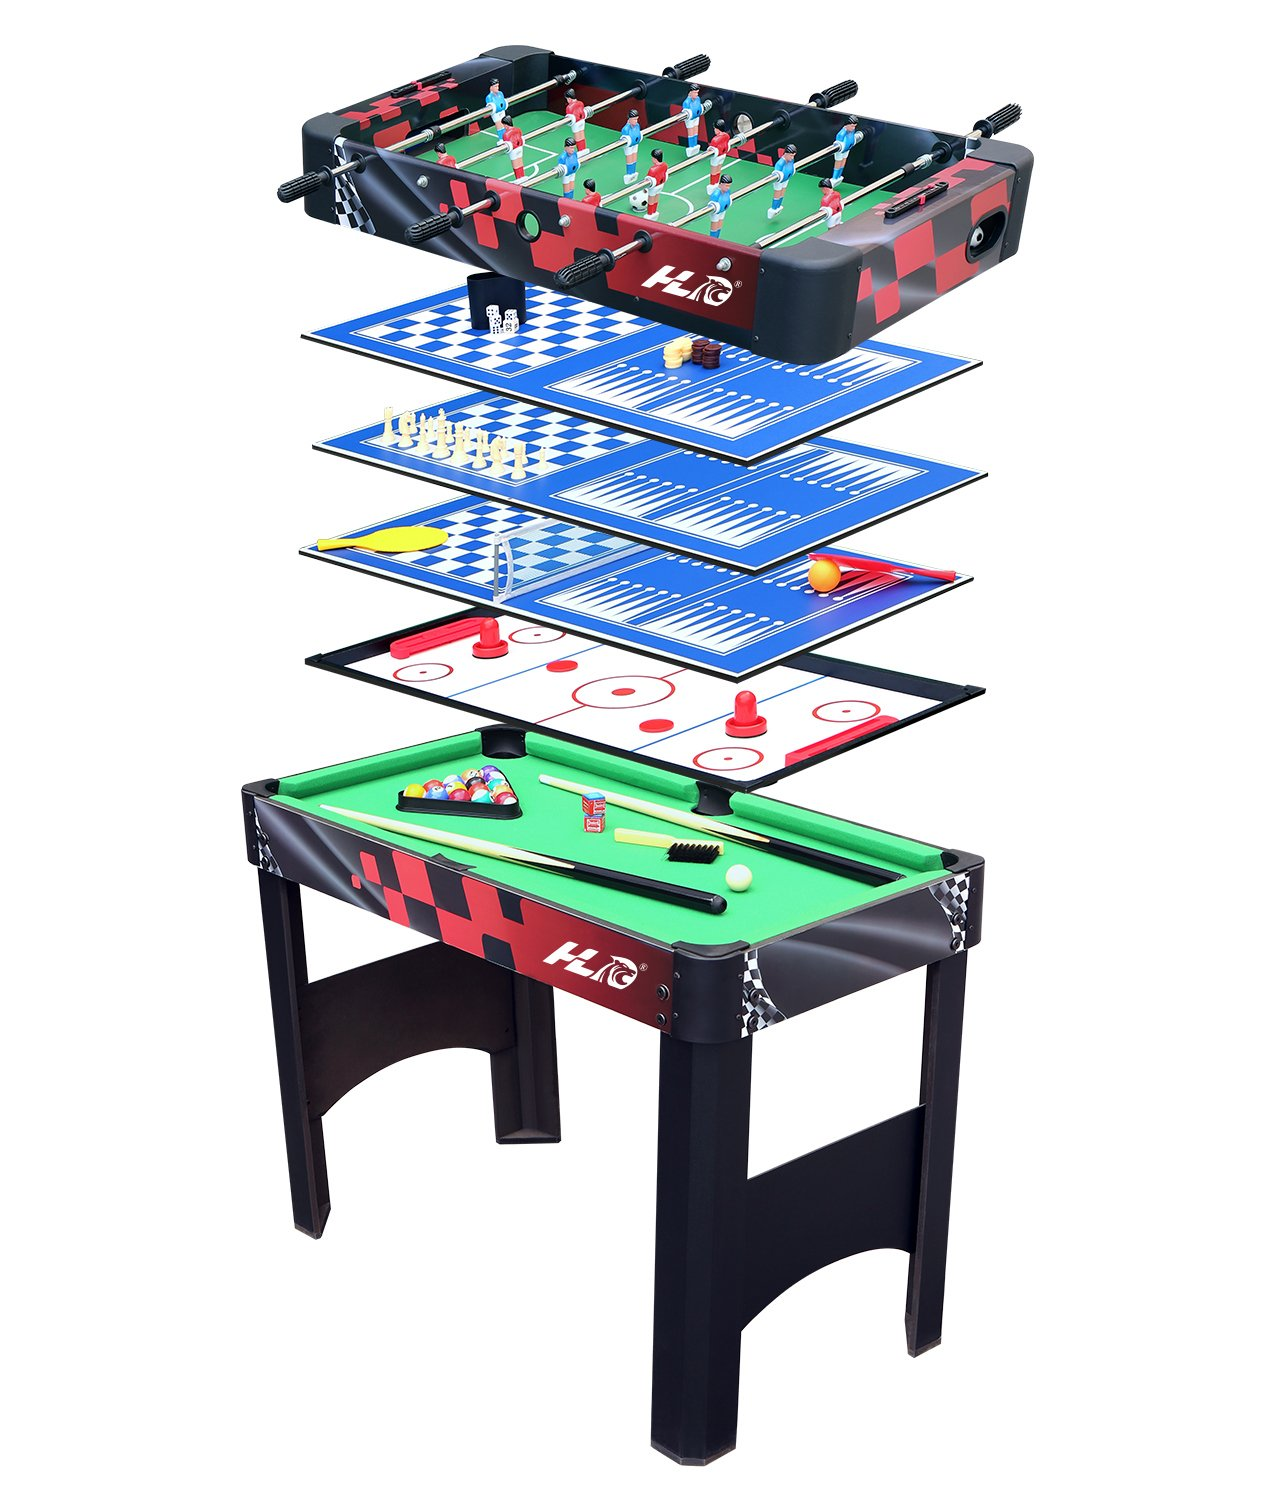 HLC 3FT 6 In 1 Multi Game Table Combo Table Includeds Pool/Snooker,  Football,Air Hockey, Table Tennis Table,Chess And Backgammon: Amazon.co.uk:  Sports U0026 ...